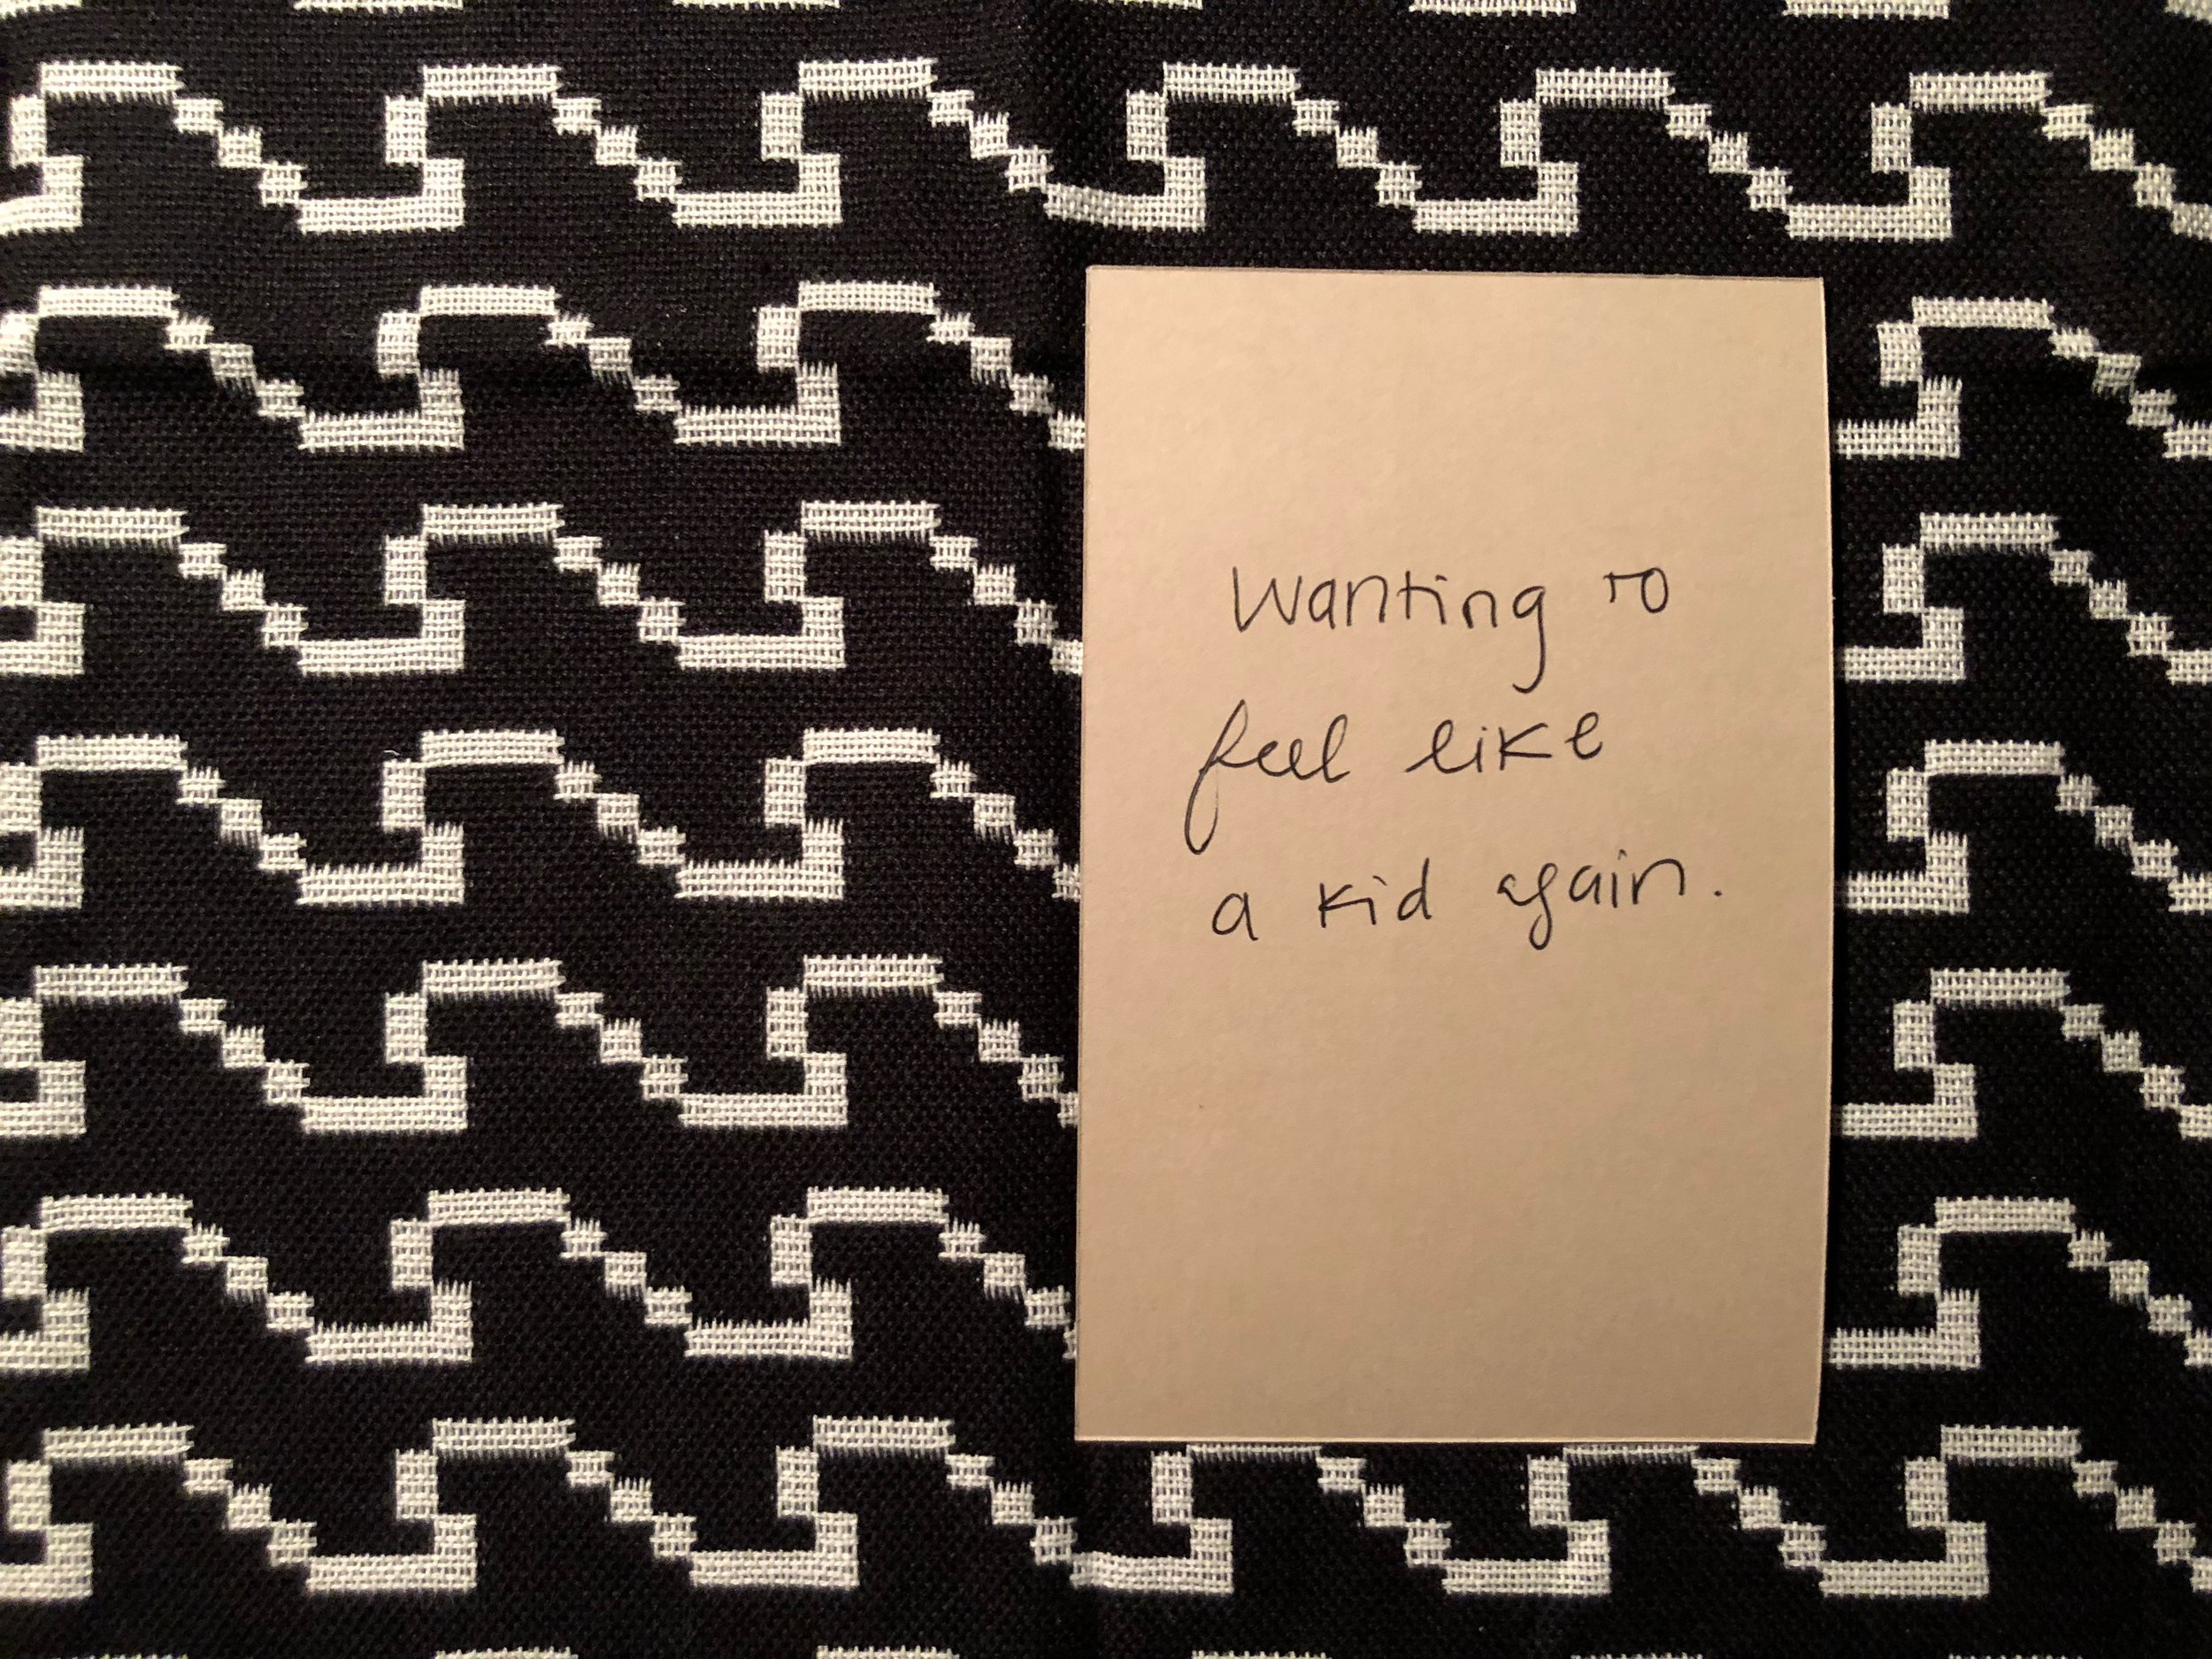 Write down your interpretation of its meaning on an empty card. -